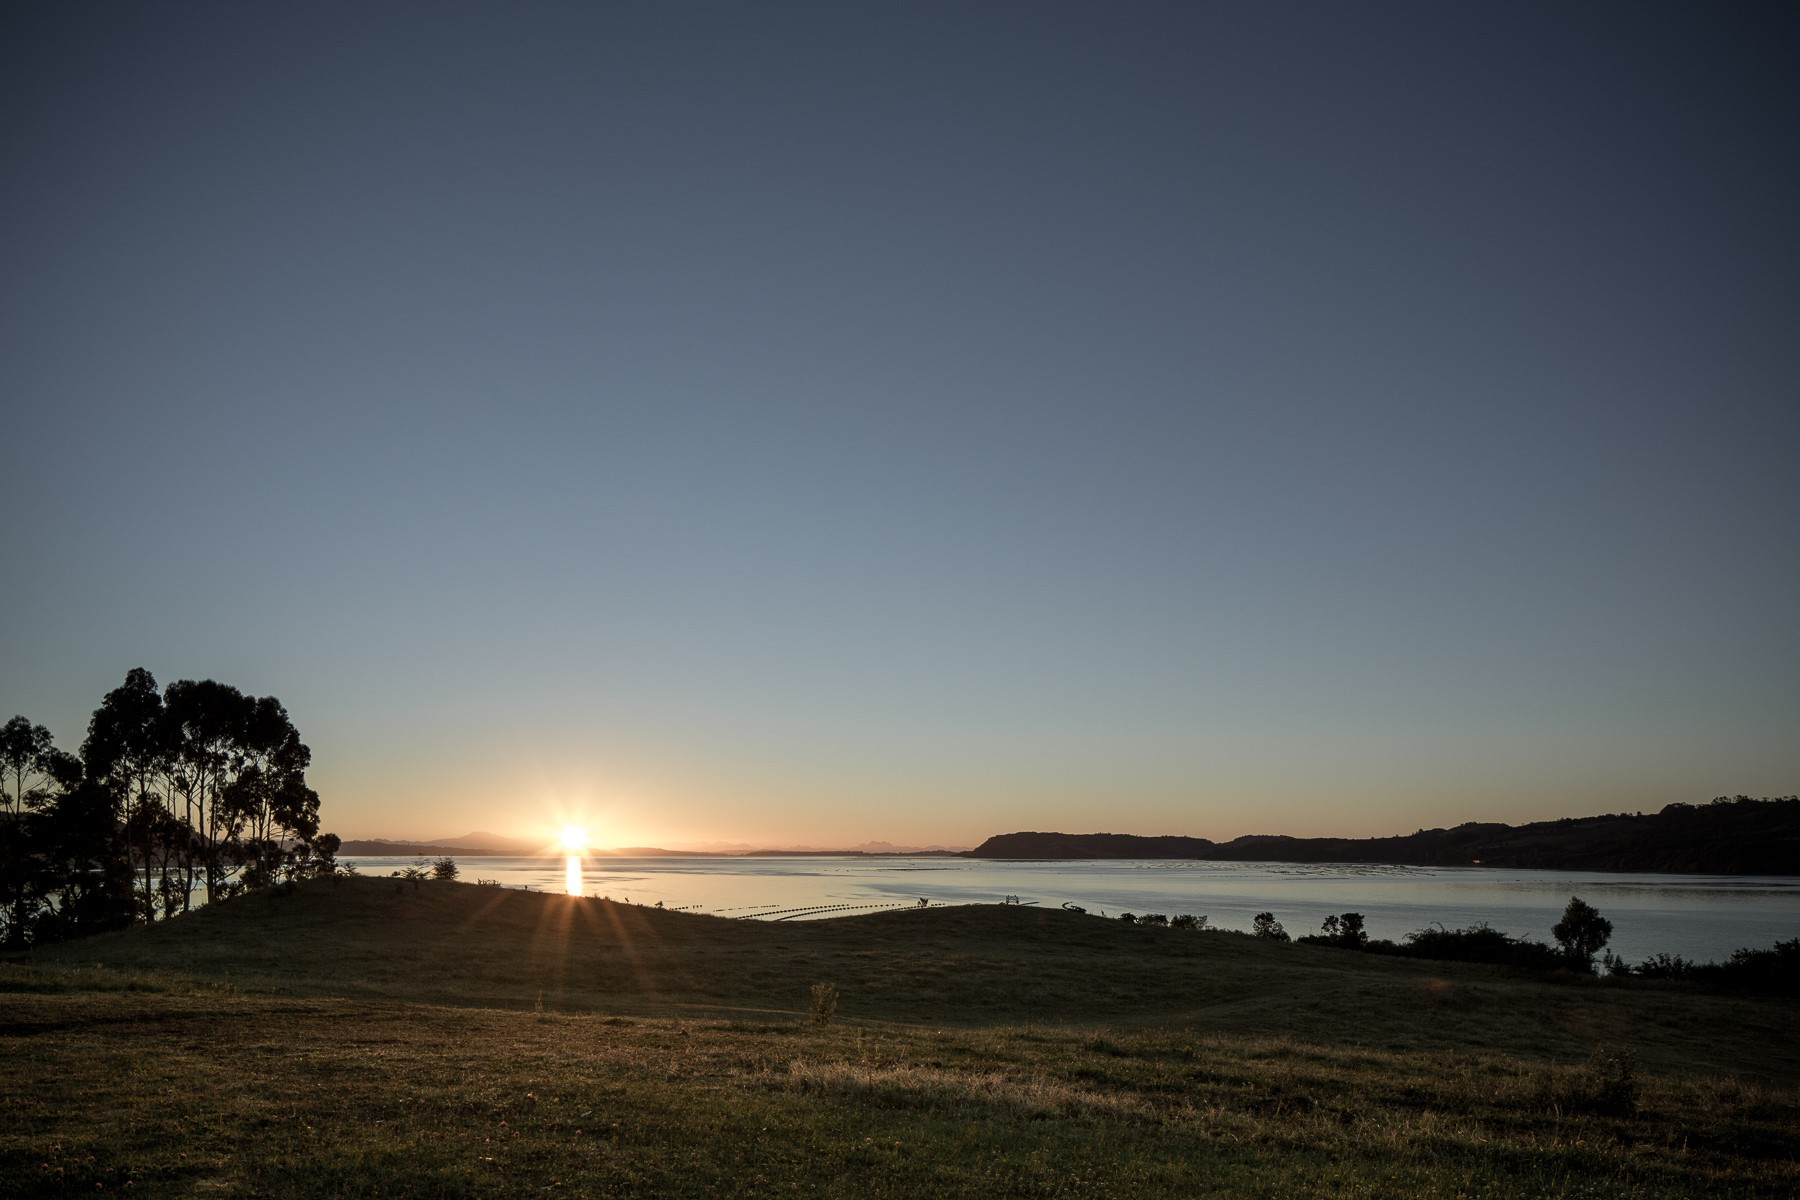 Hotel Tierra Chiloe Sunset View